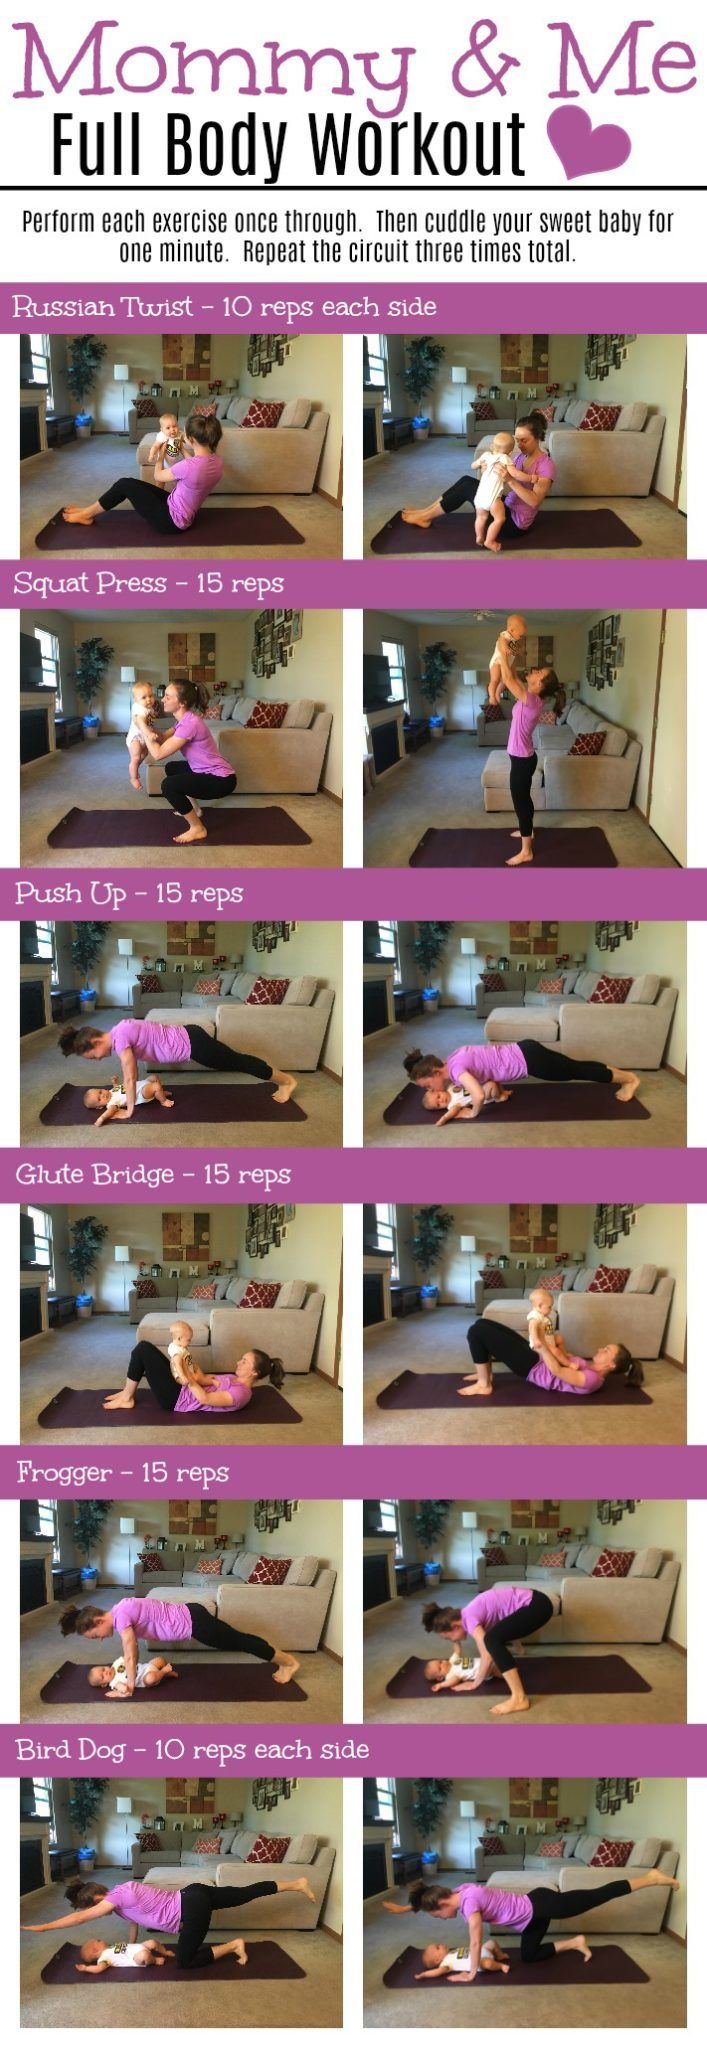 June's workout of the month is all about working your full body and including your baby in the action for a memorable Mommy & Me workout!